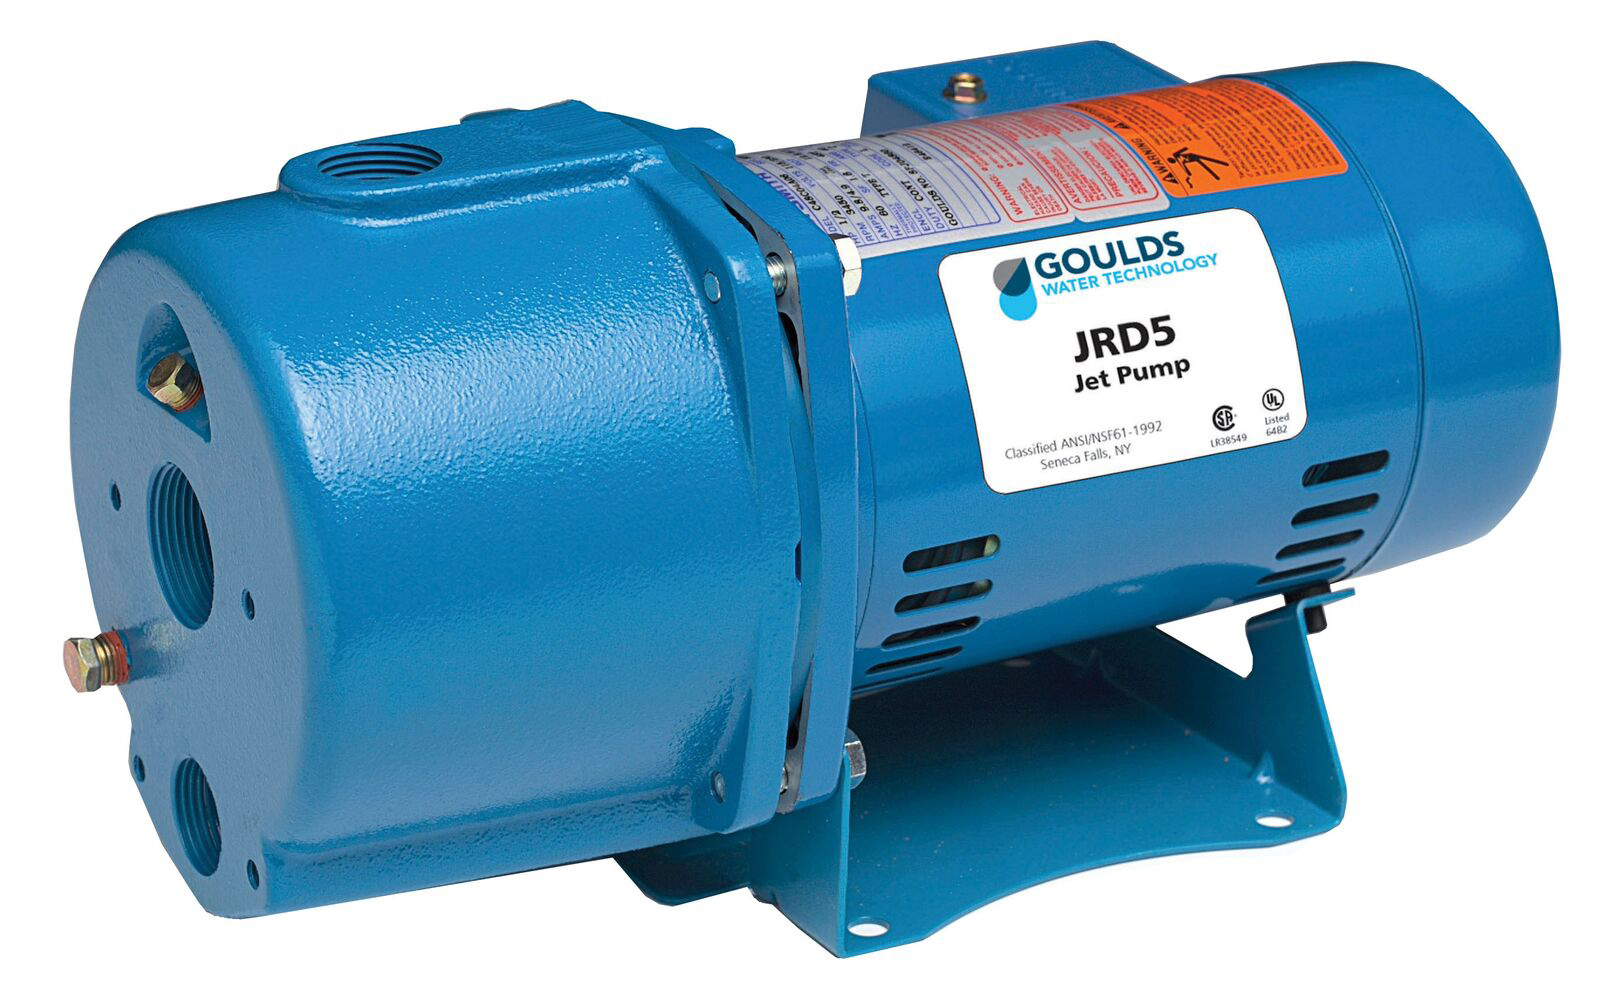 Goulds JRD7 3/4HP Convertible Water Well Jet Pump Single Phase